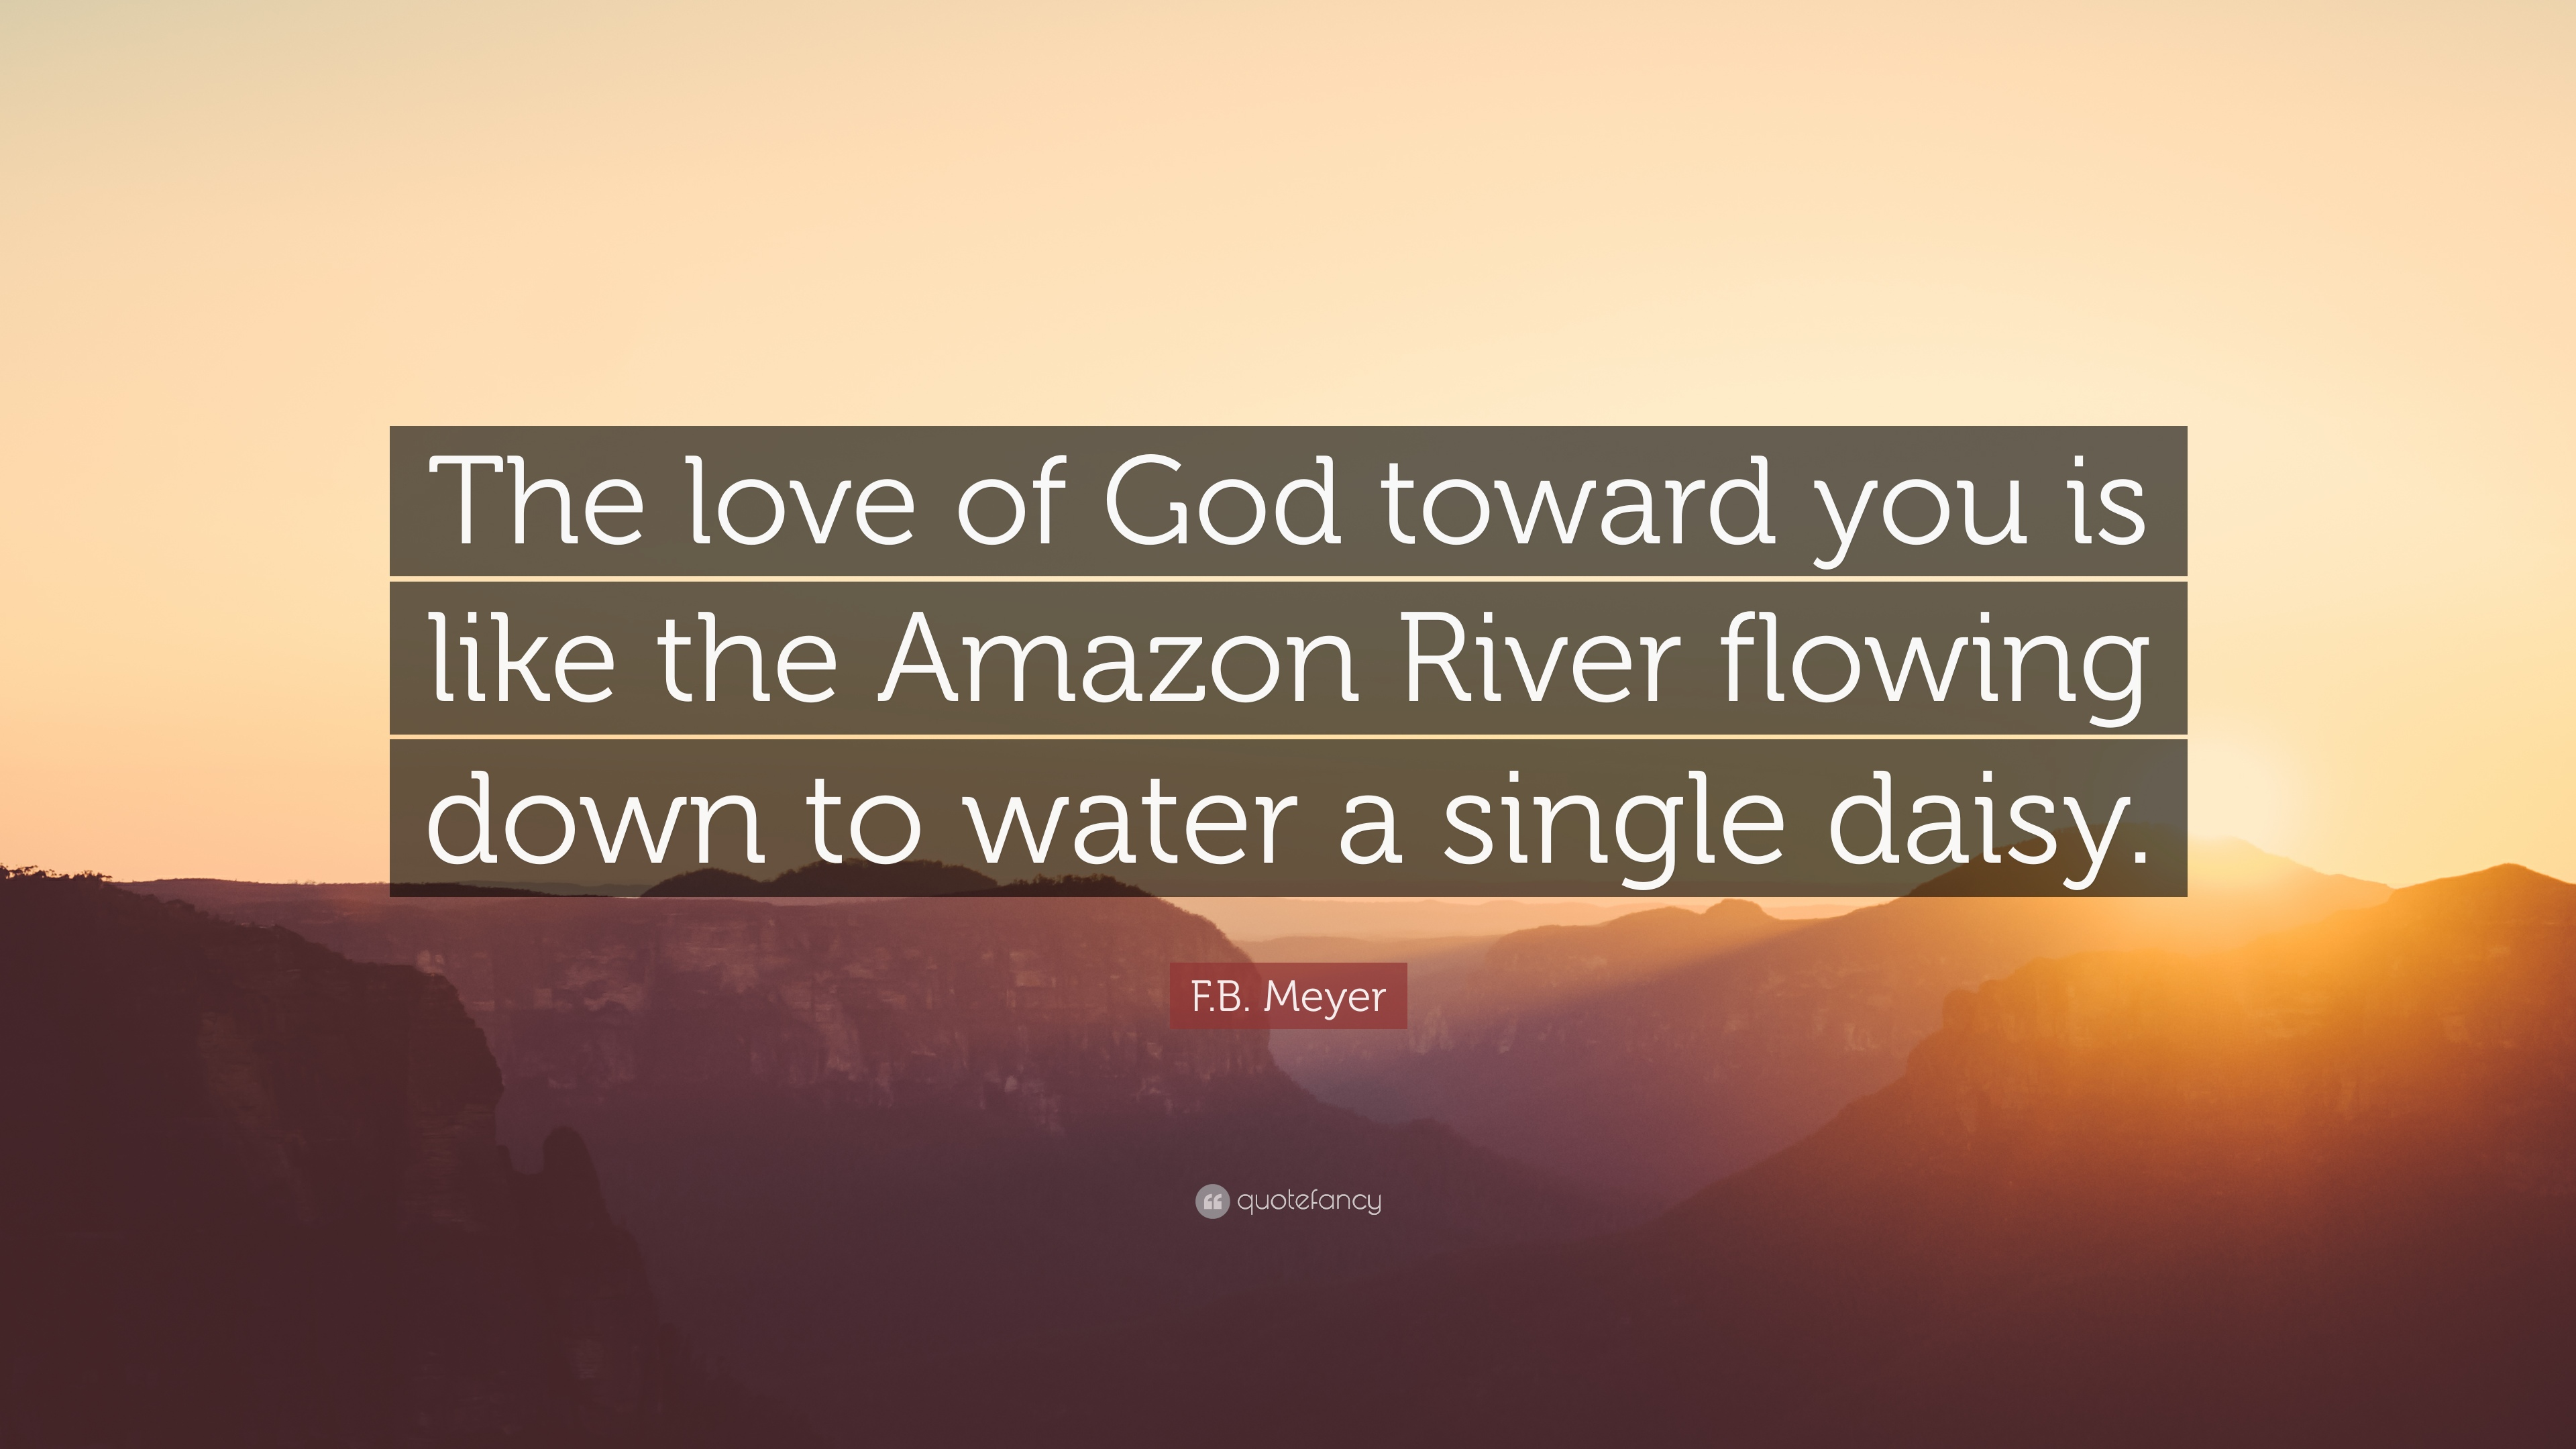 Fb Meyer Quote The Love Of God Toward You Is Like The Amazon